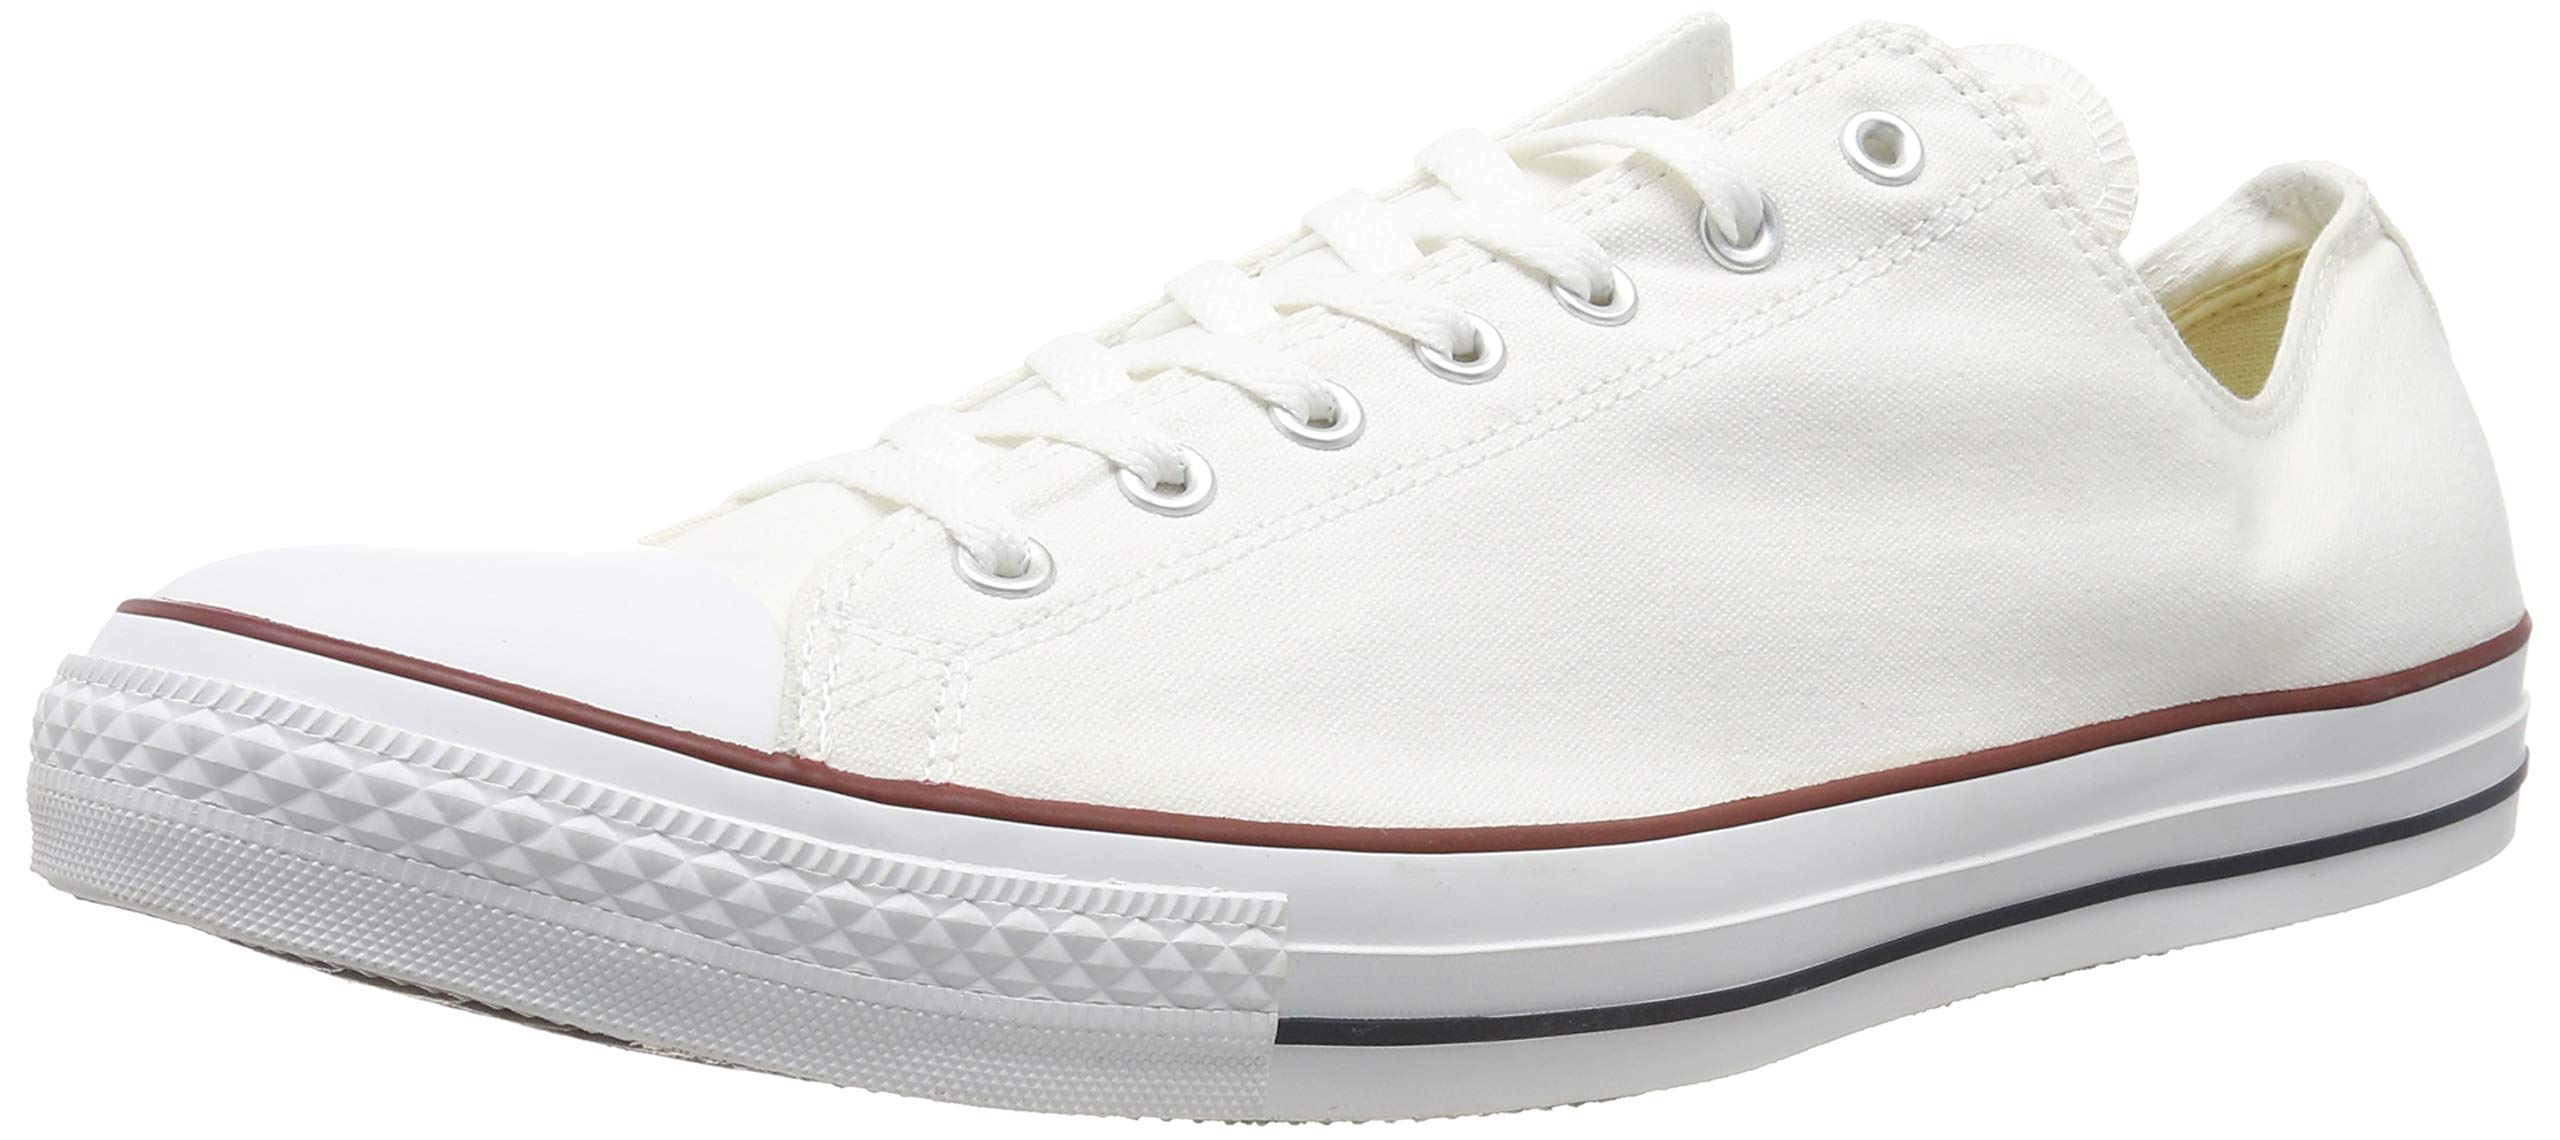 Unisex mUs Sneakers11 Top 5 B mMenOptical Chuck 5 Low Converse 9 White Taylor Star D Canvas All Women lFJcuK3T15